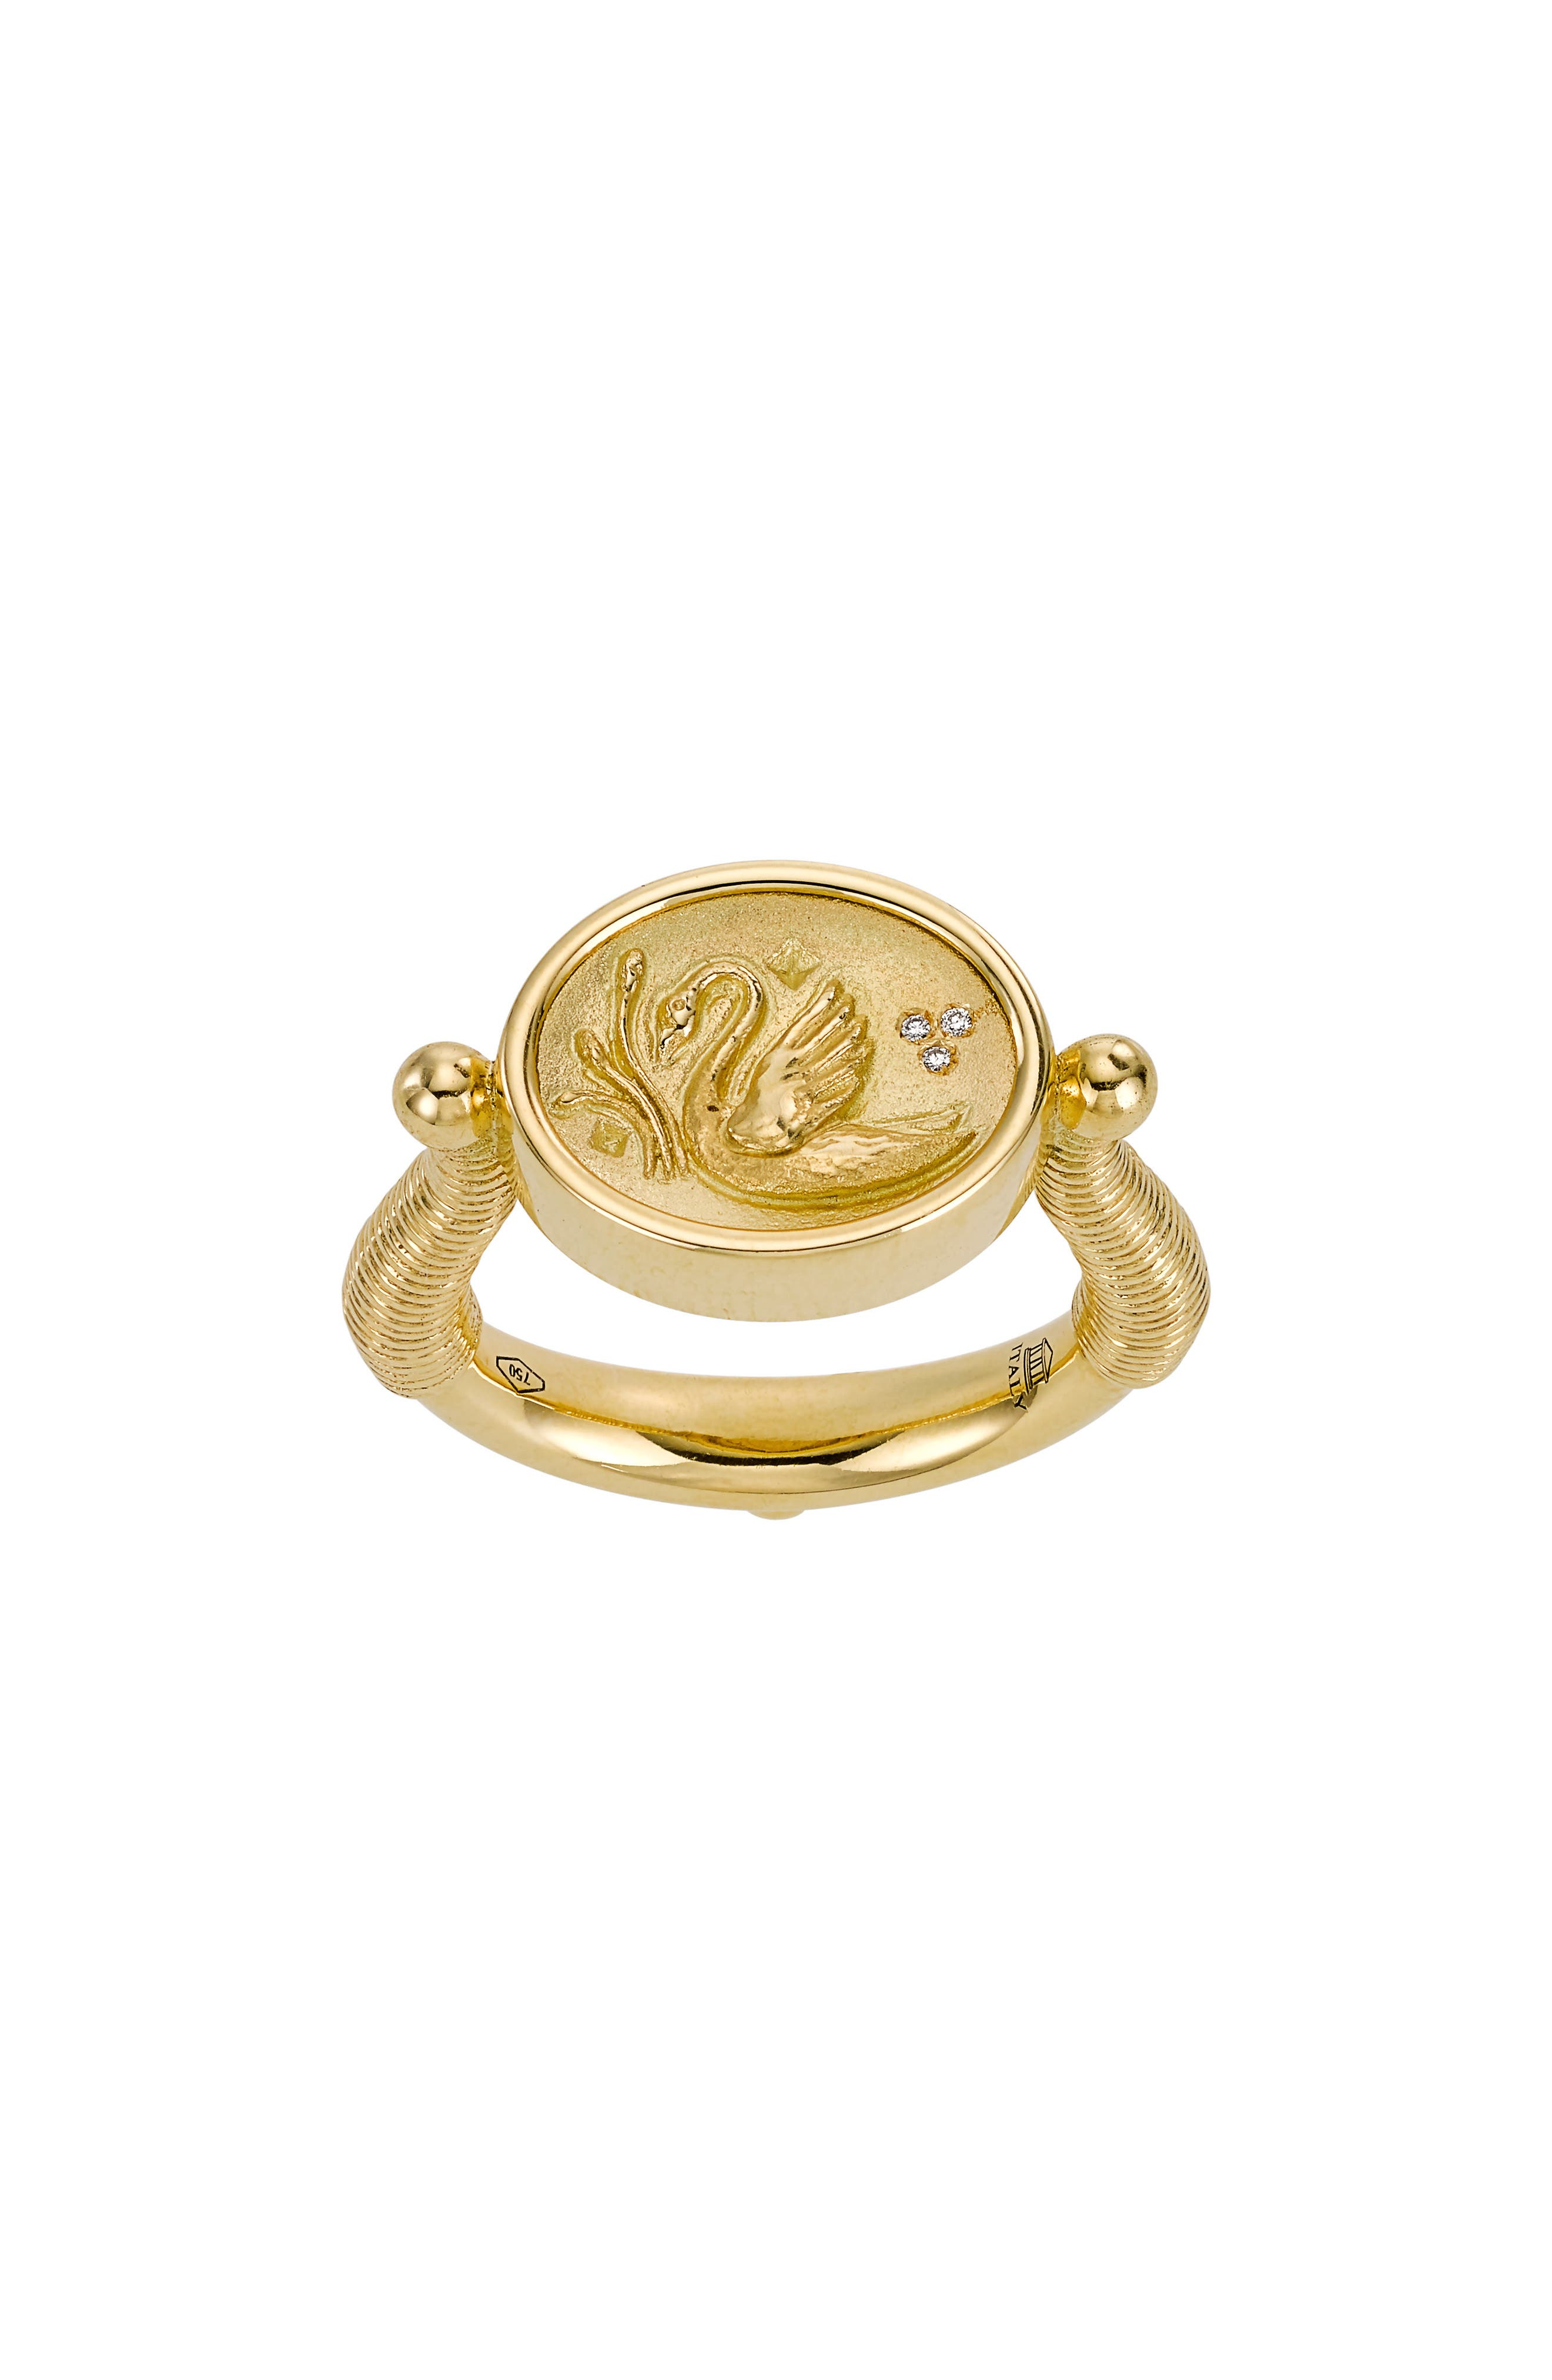 Temple St. Clair Object Trouvé Swan Coin Diamond Ring